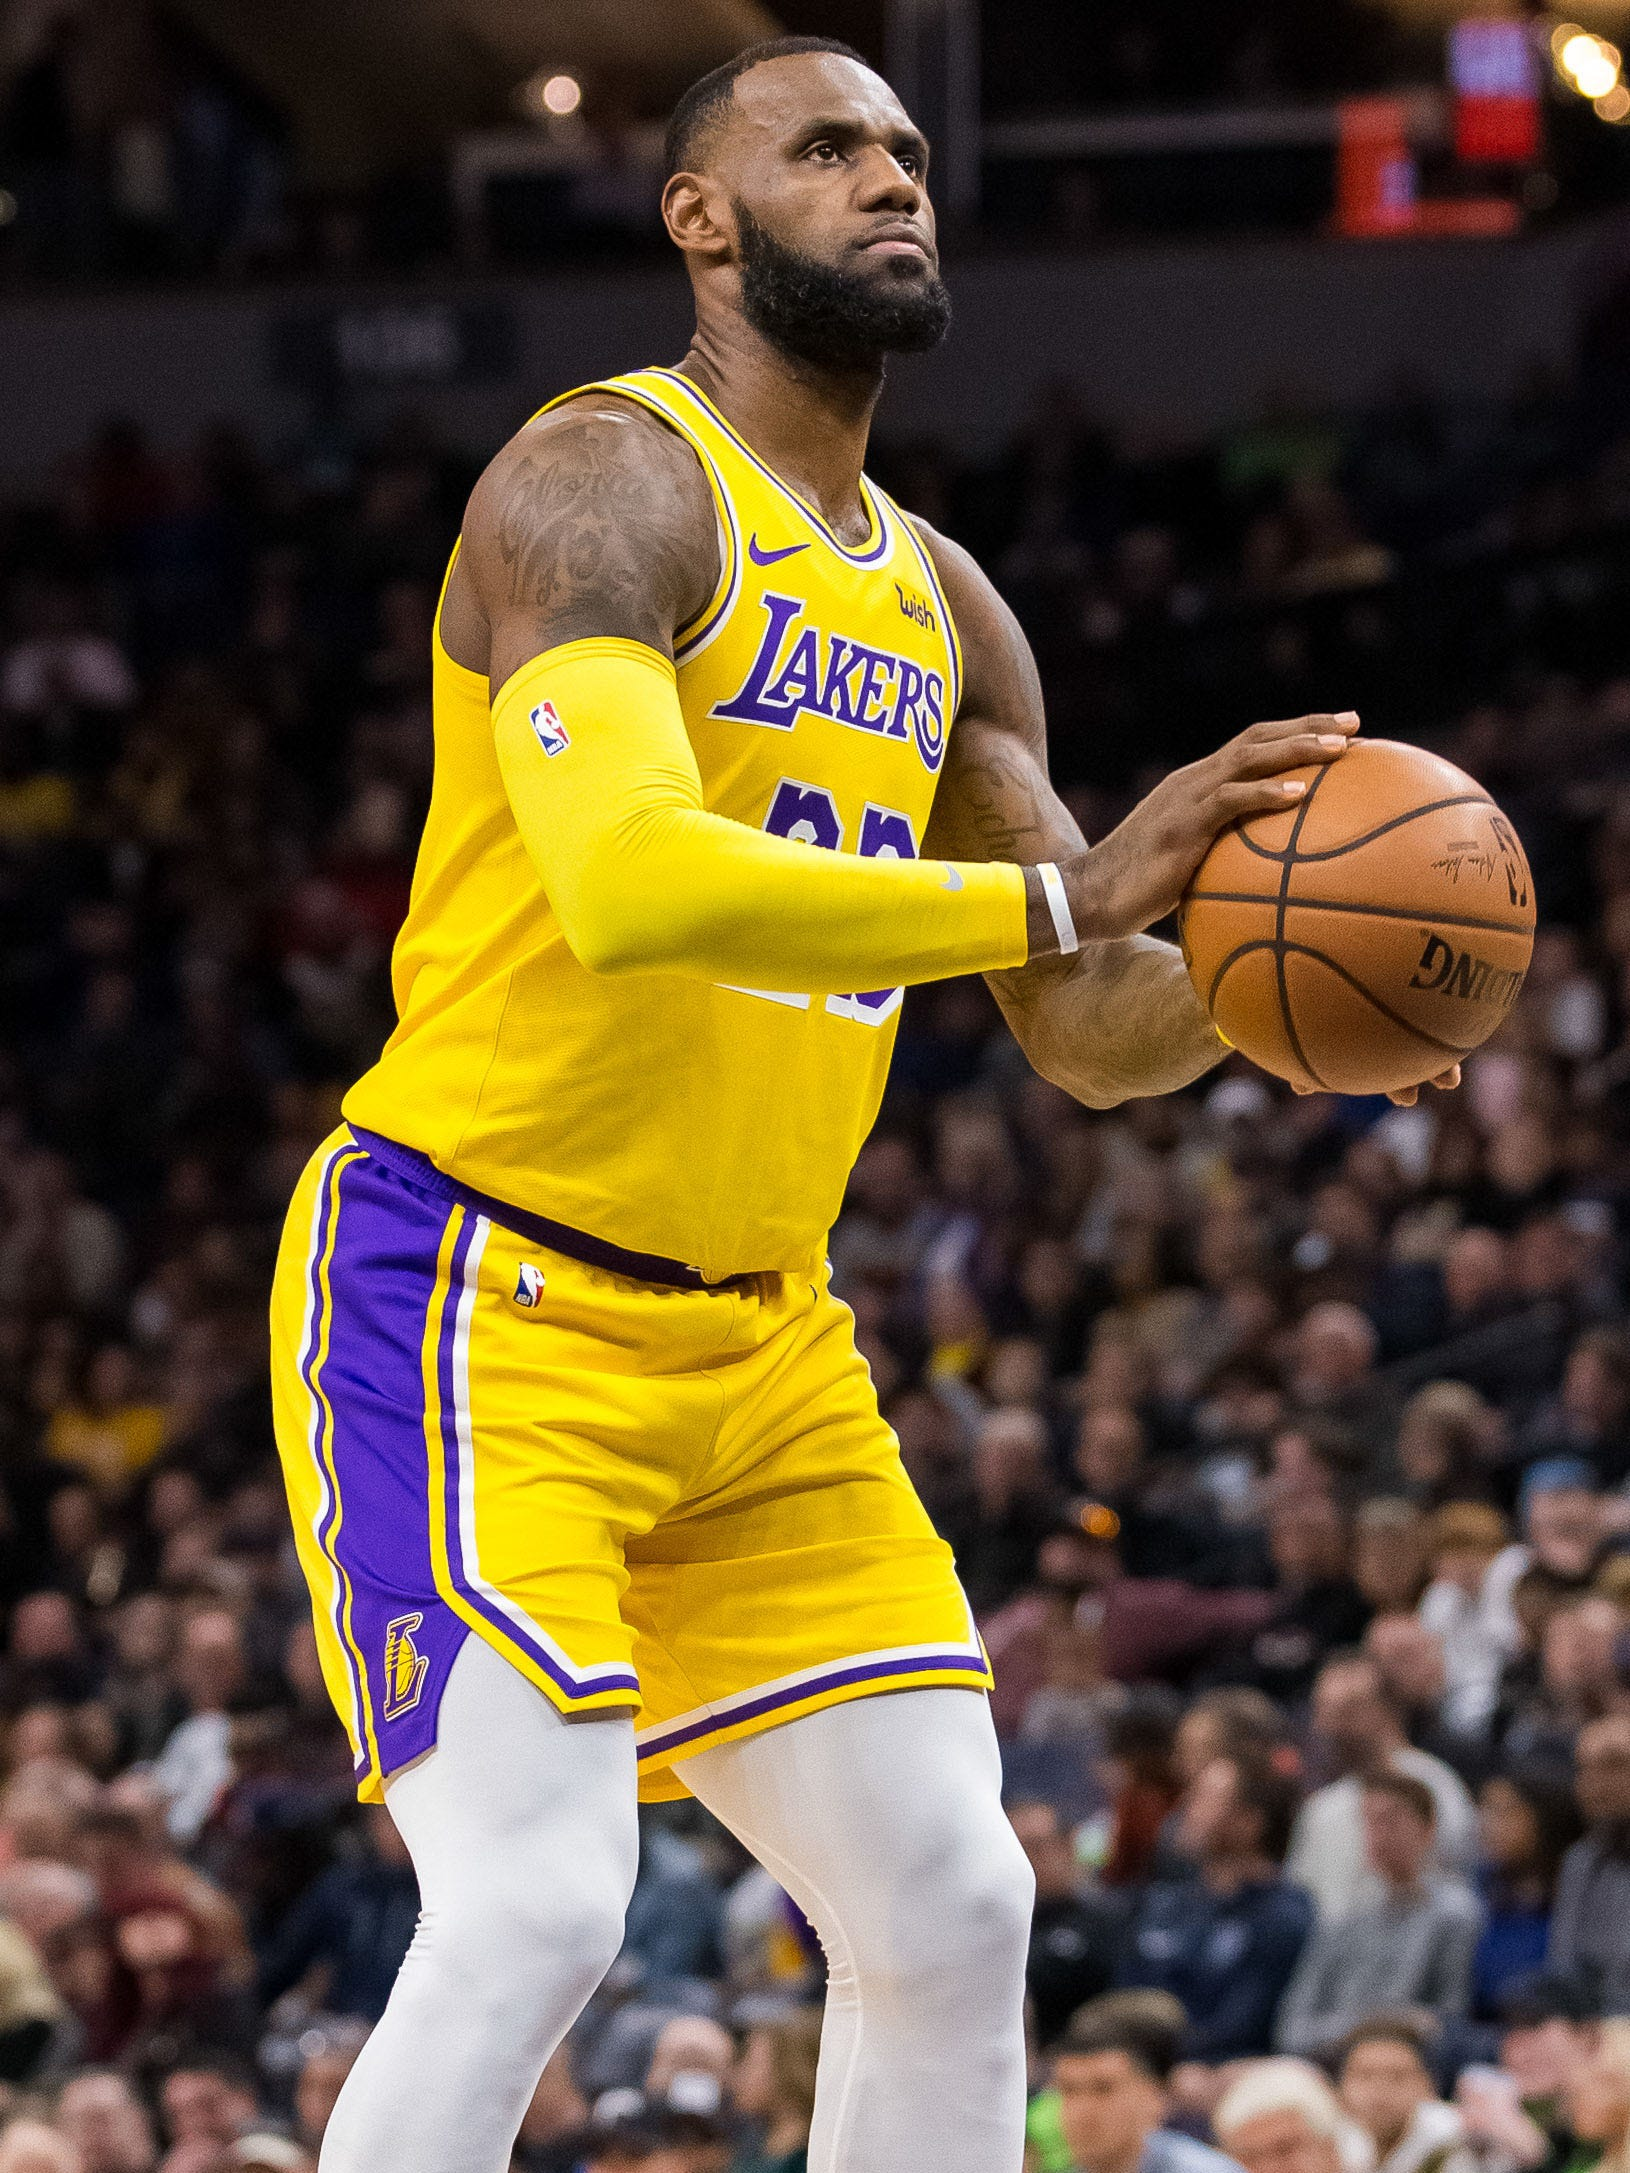 Los Angeles Lakers forward LeBron James shoots a free throw.